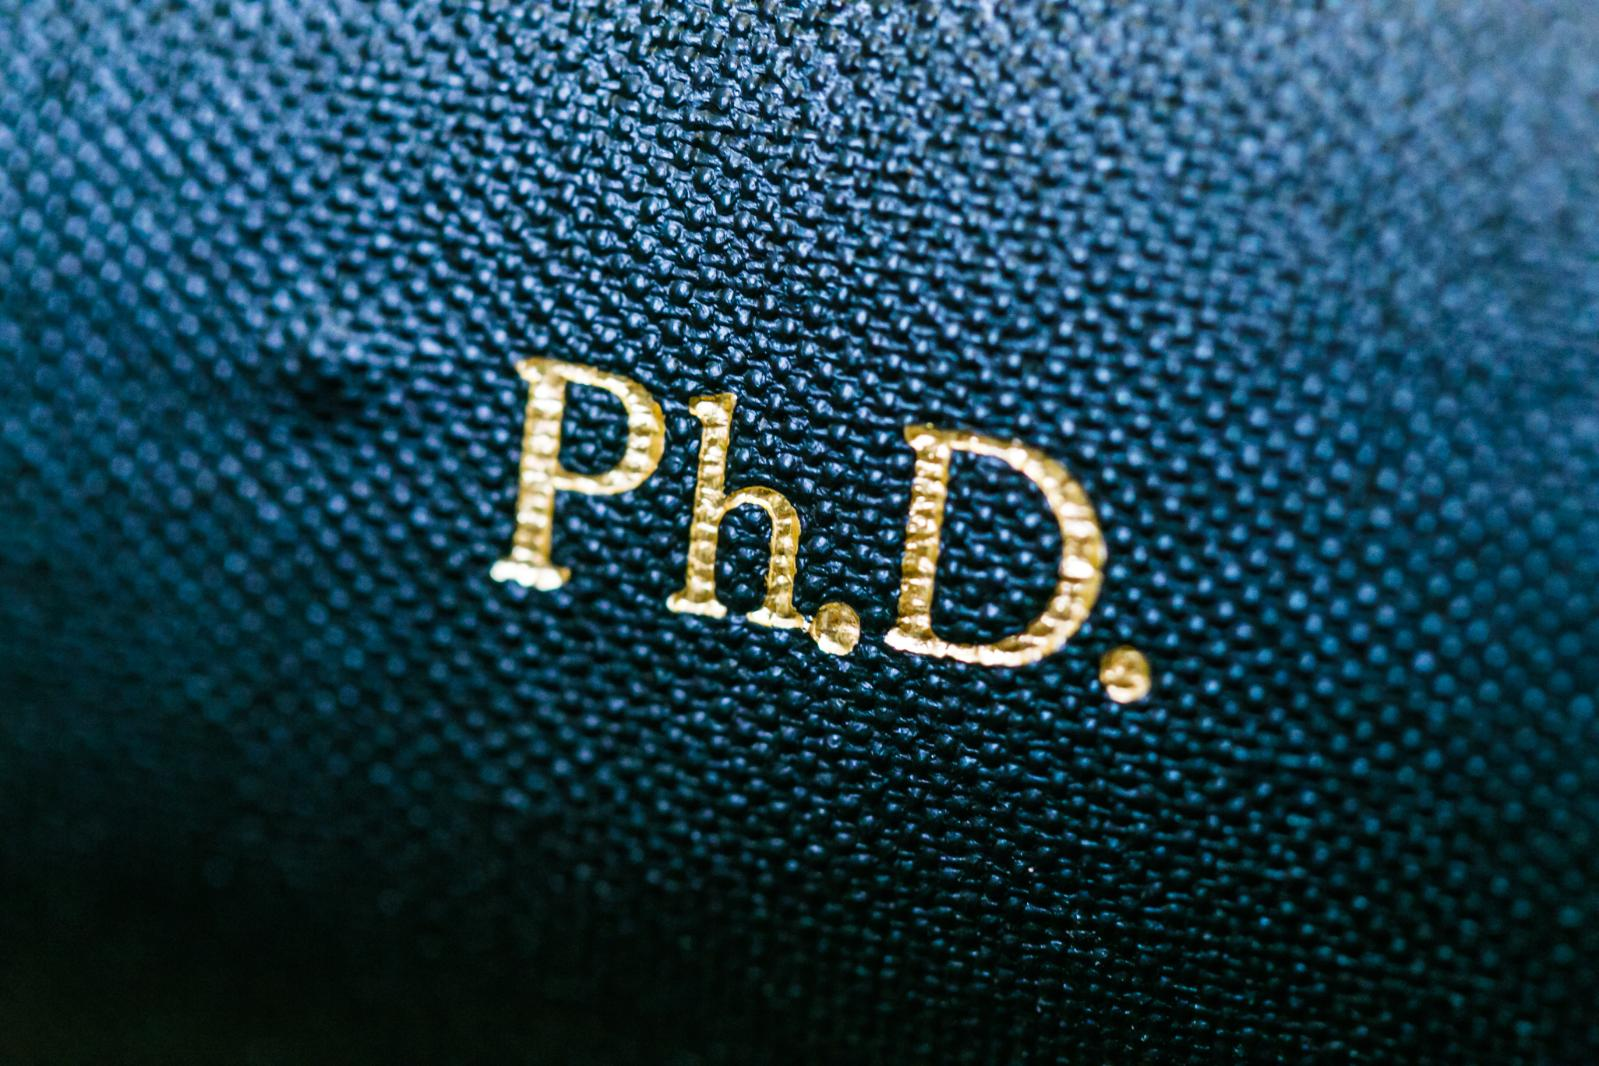 An image of the spine of a PhD thesis